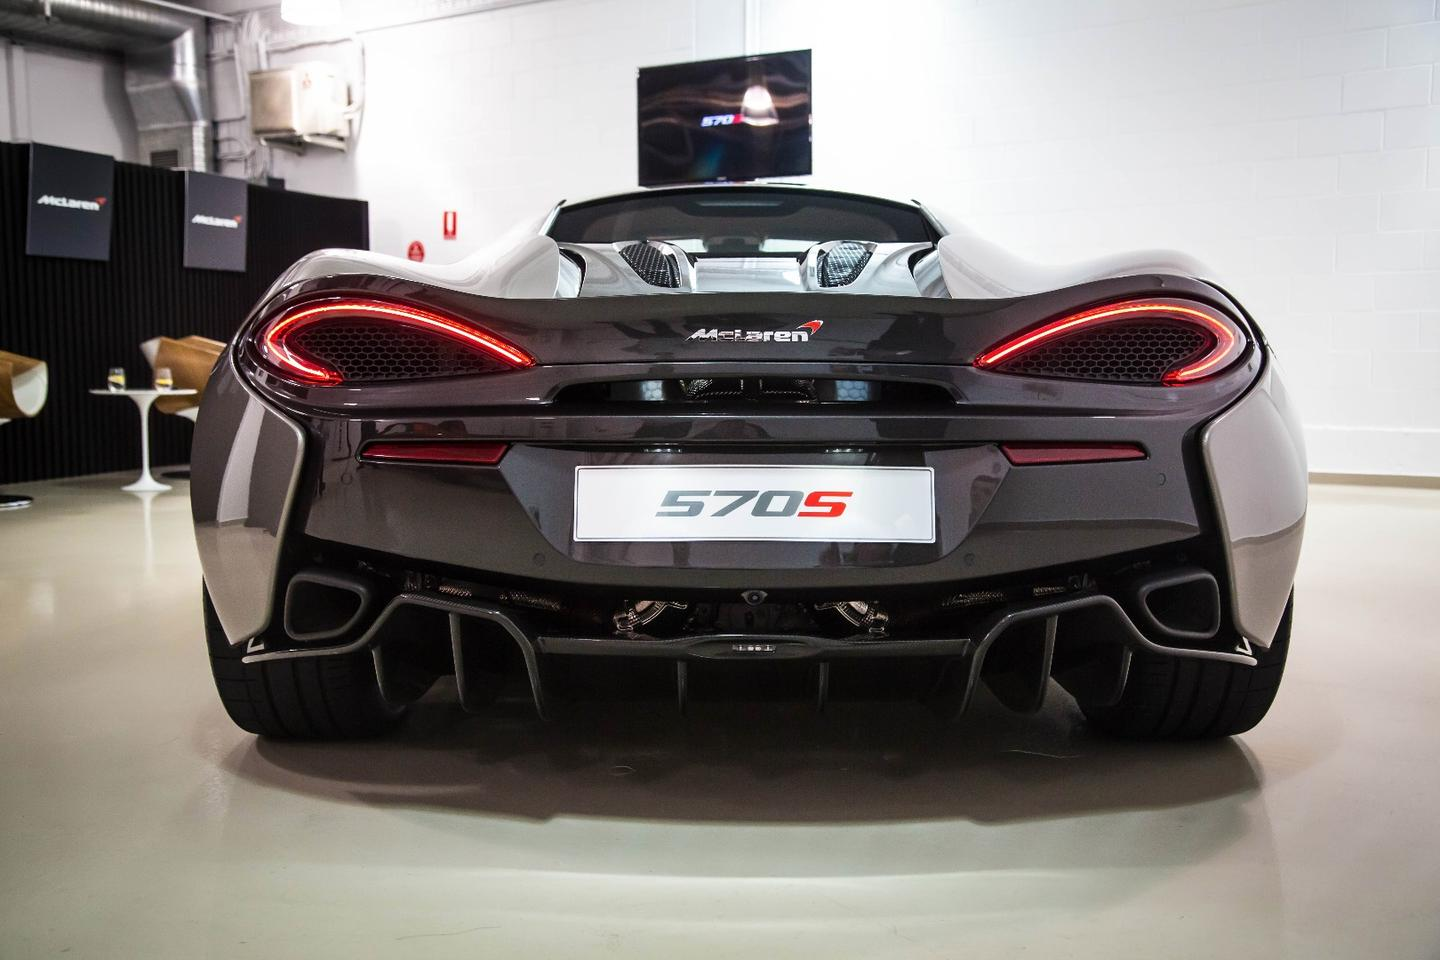 The diffuser of the 570S has been inspired the P1